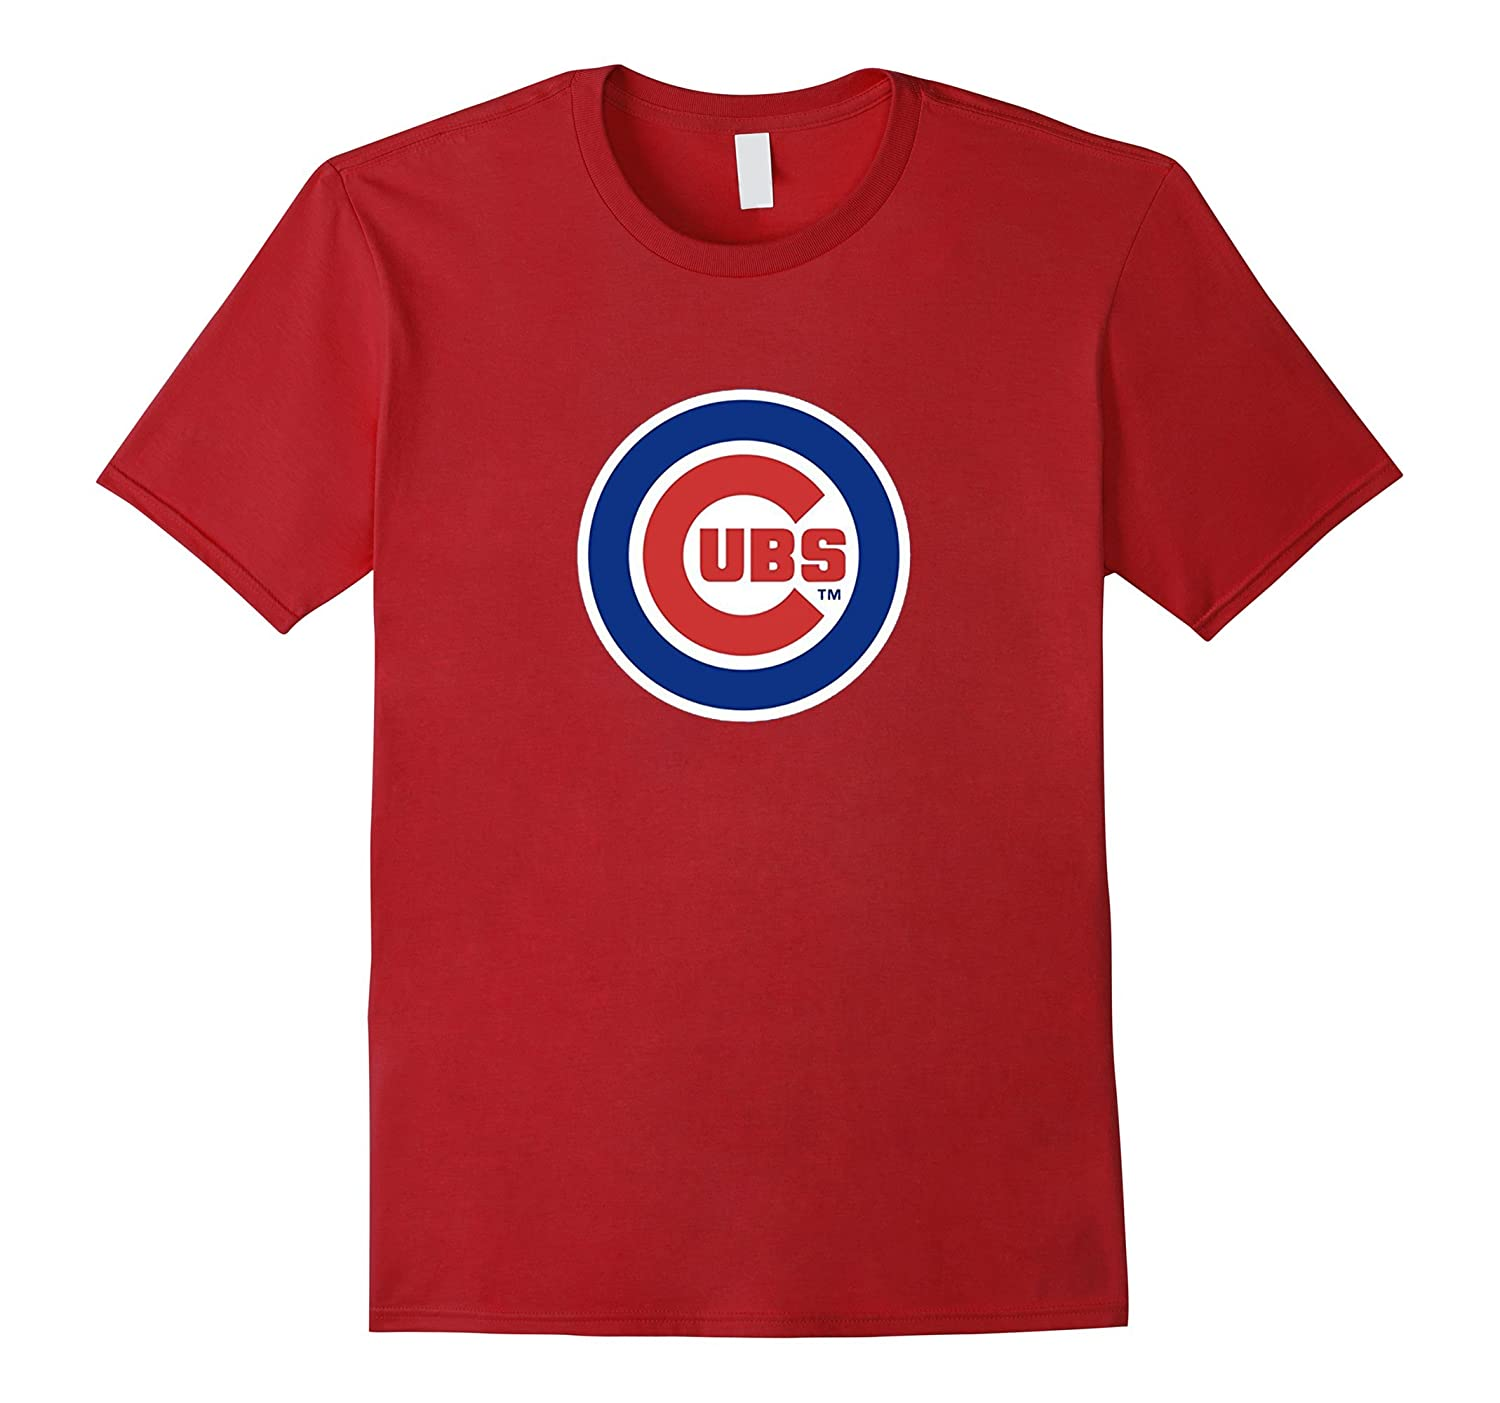 Finally, We Clinched T Tee shirt-CL